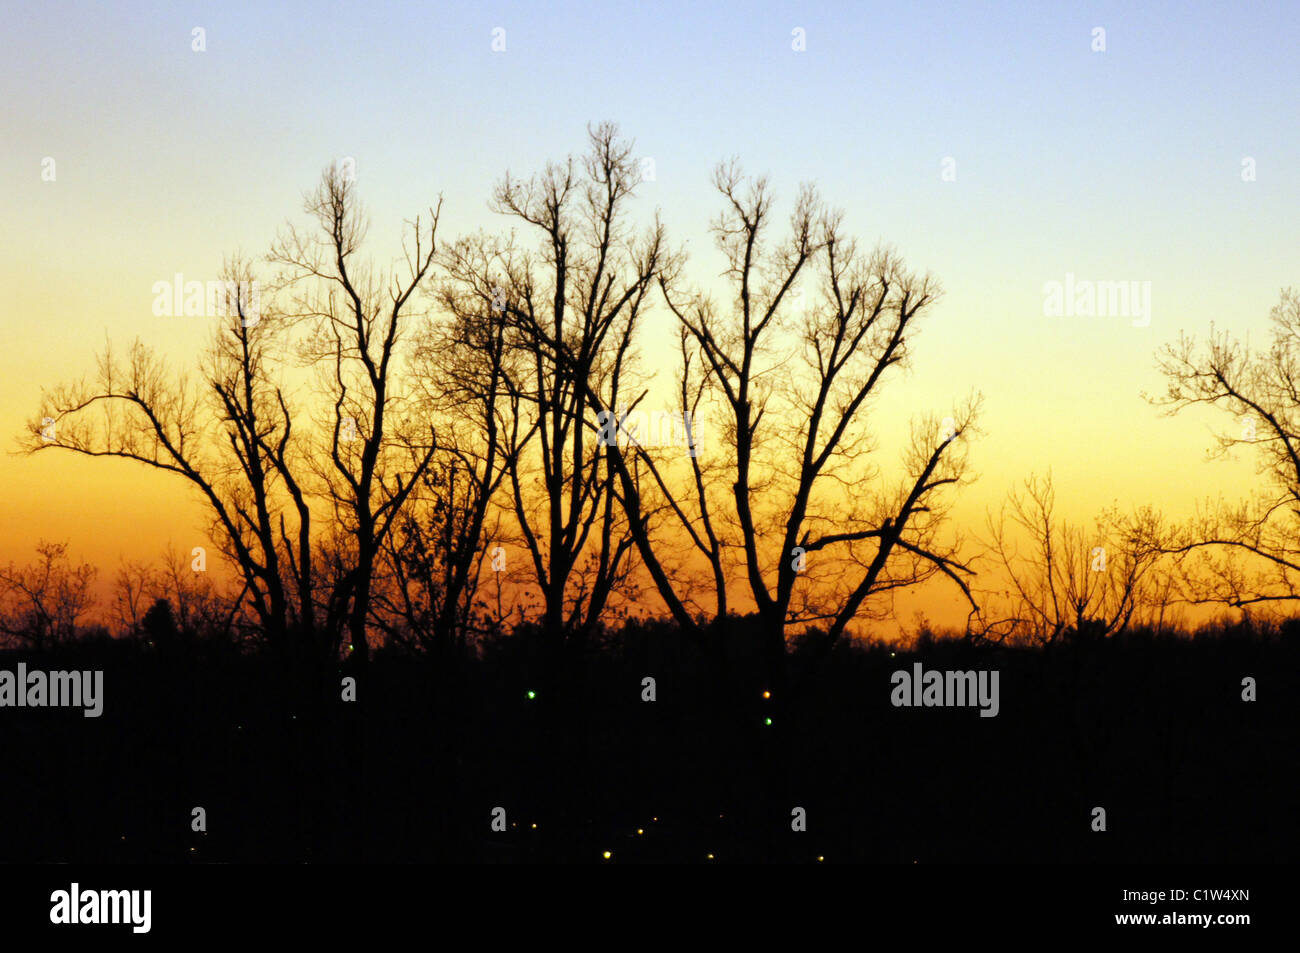 Arkansas Sunset with tall black silhouetted trees centered in the image.  A blue and orange sky provides great contrast. - Stock Image